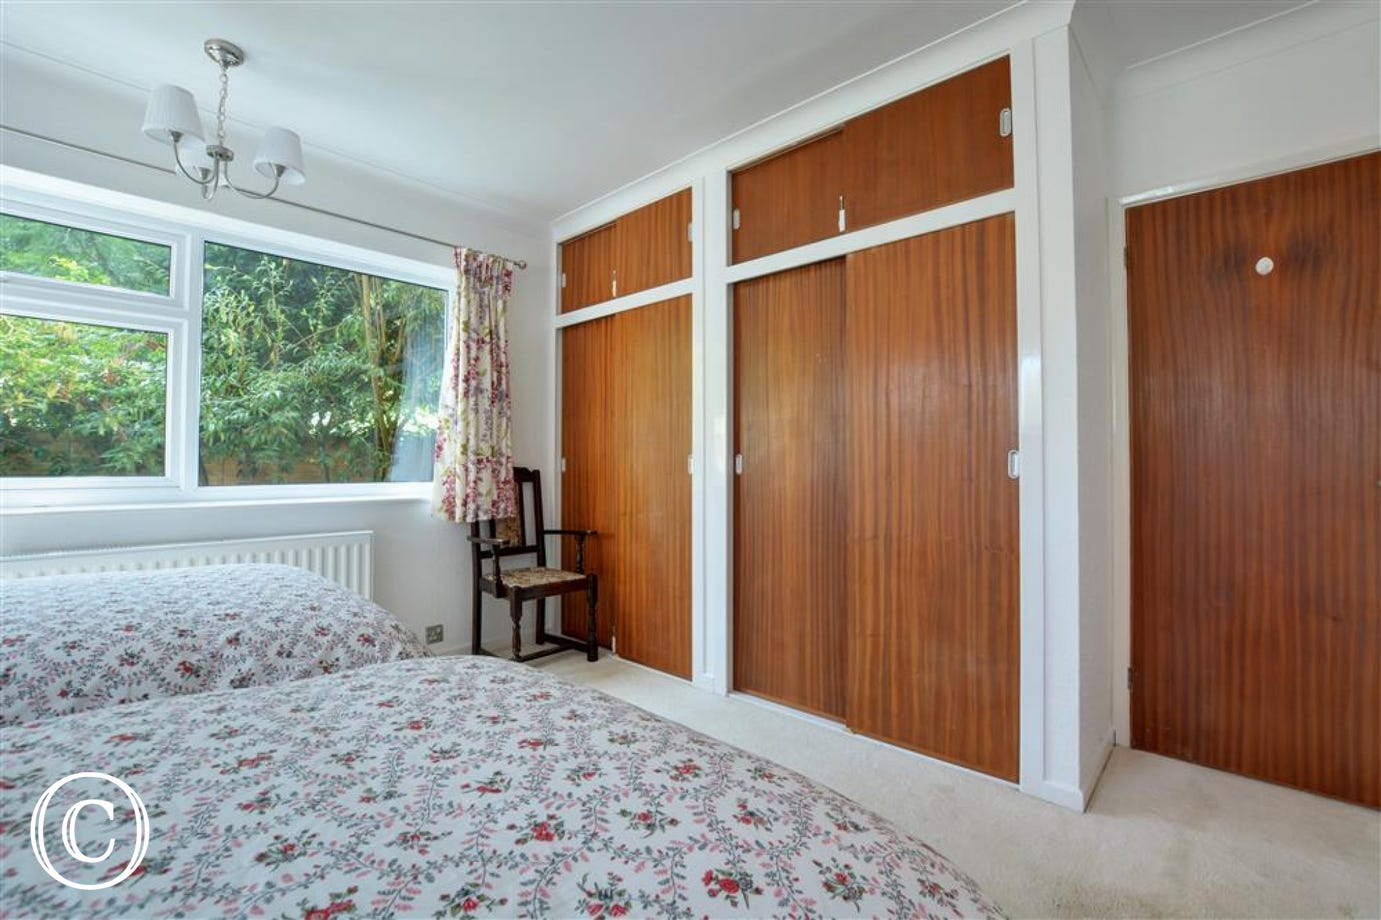 Built in wardrobes provide ample storage in the main bedroom